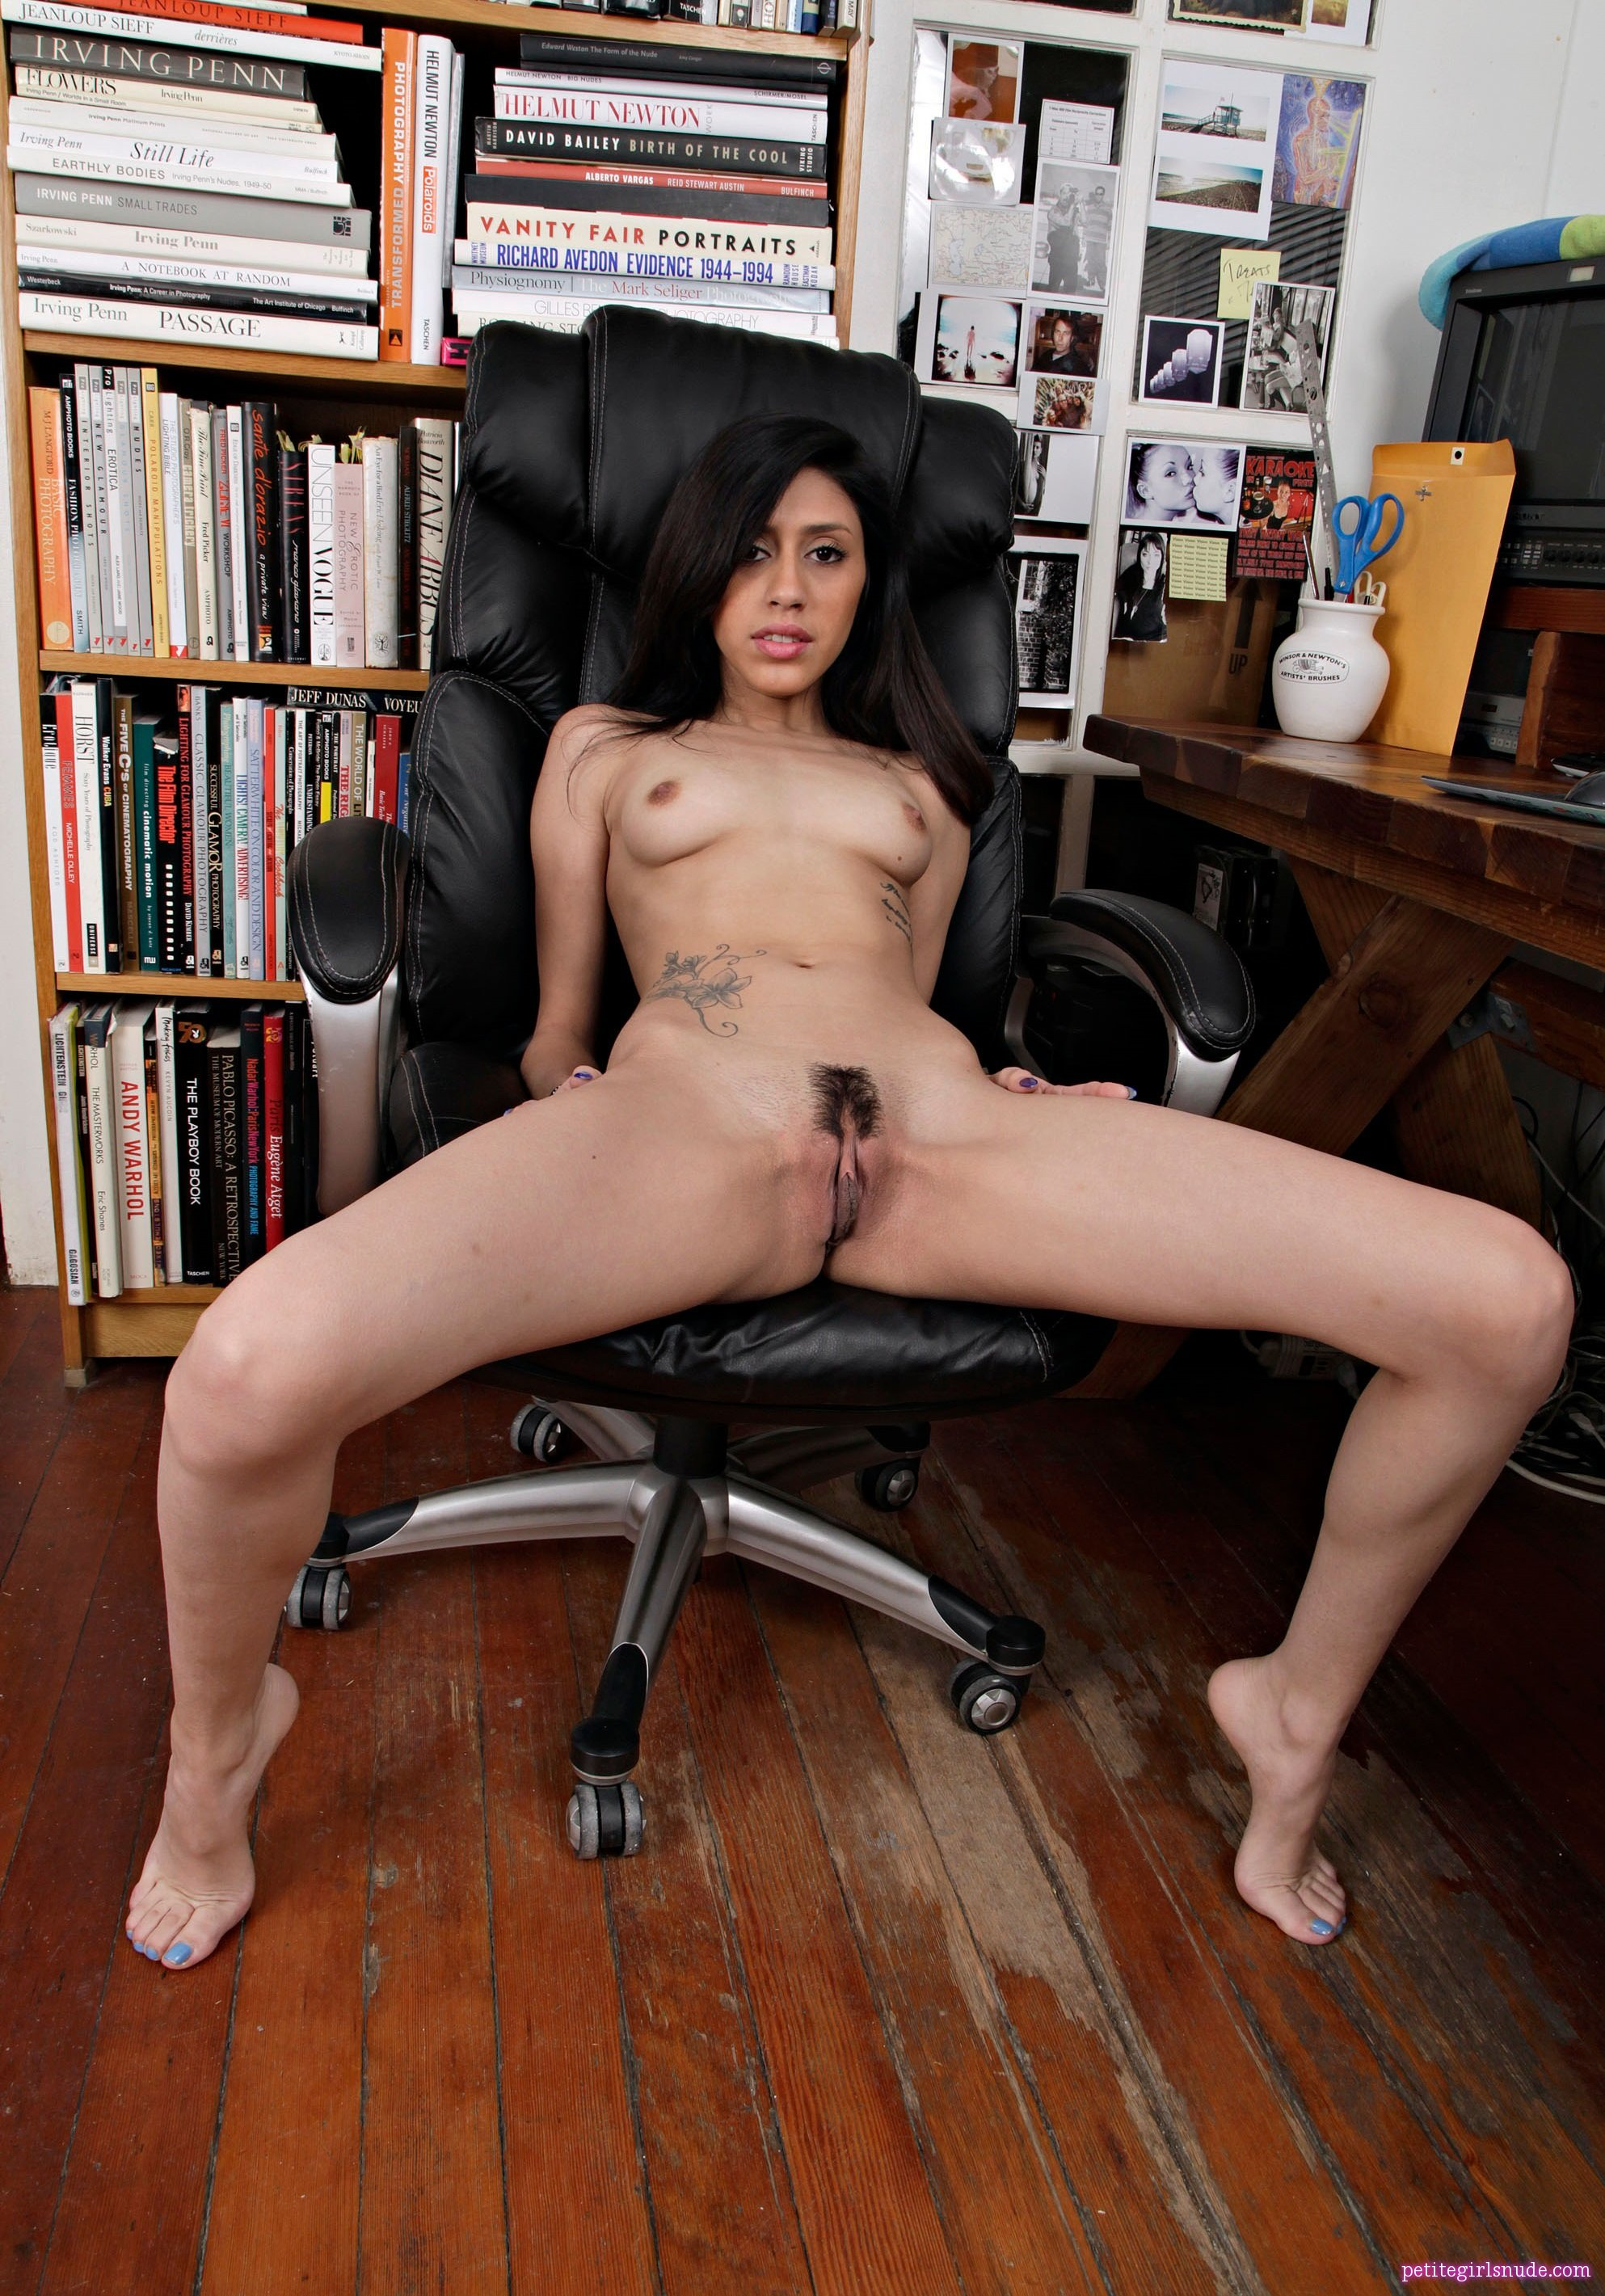 Angel Del Rey Nude Pics And Biography-9098